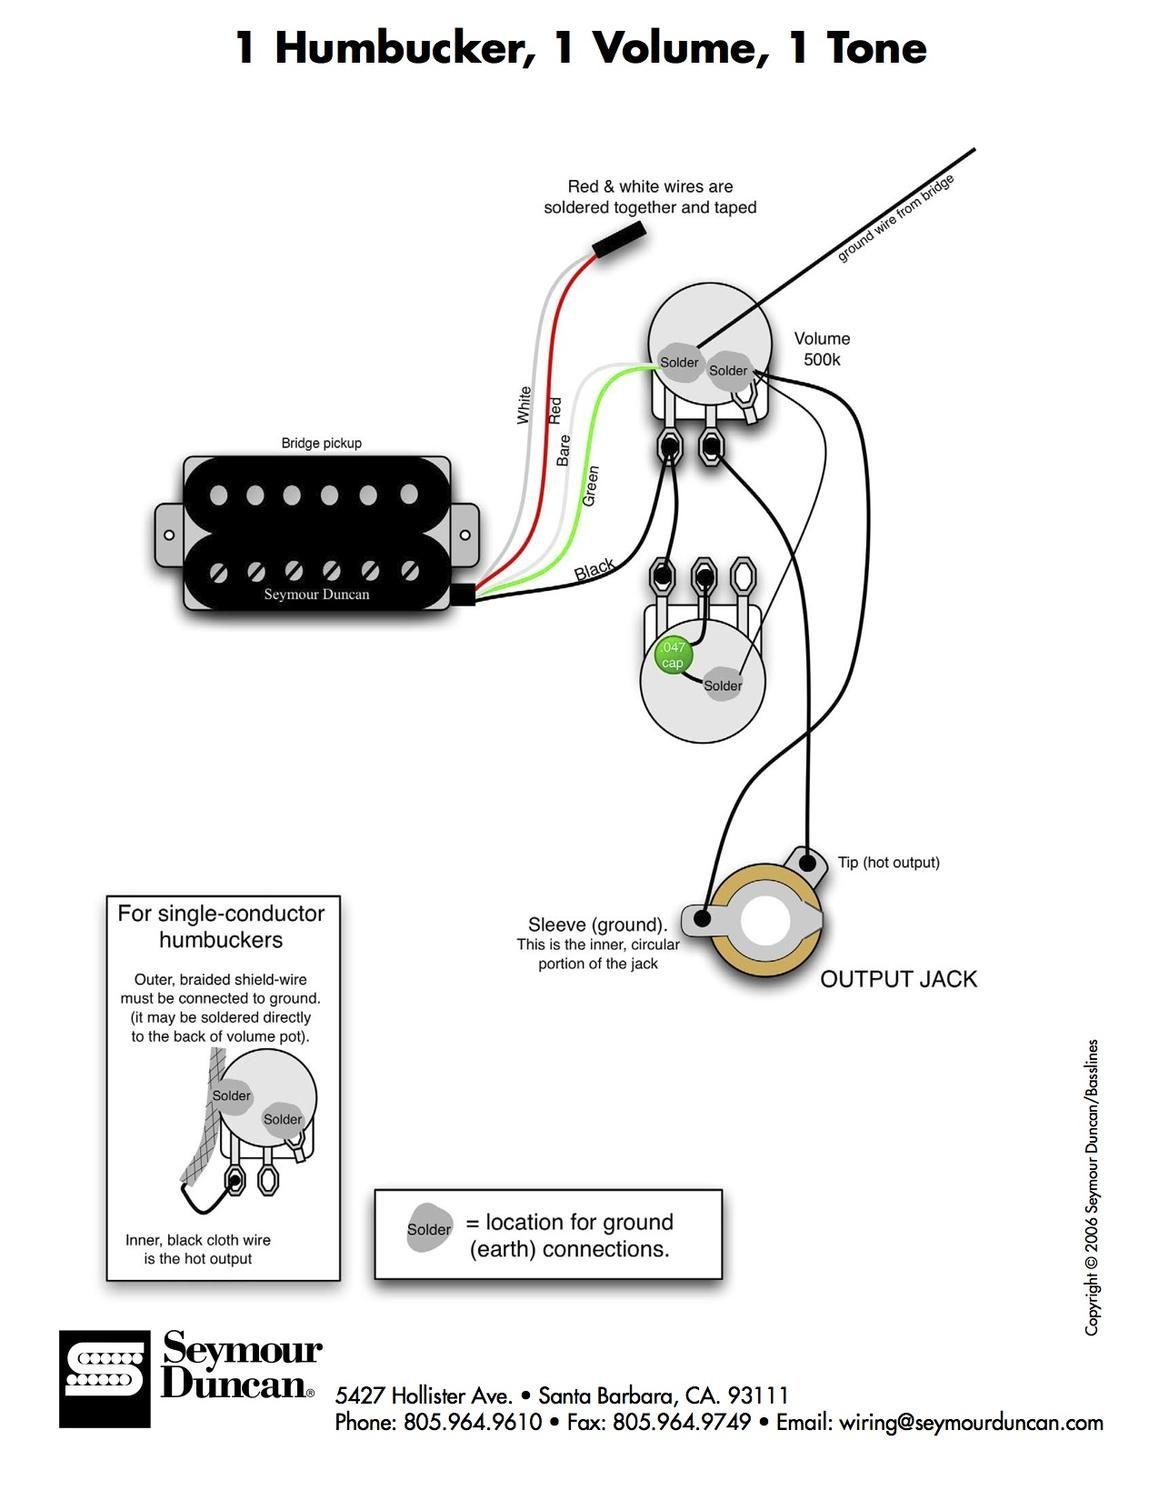 Peachy Bass Humbucker Wiring Diagram Wiring Diagram Wiring Cloud Usnesfoxcilixyz